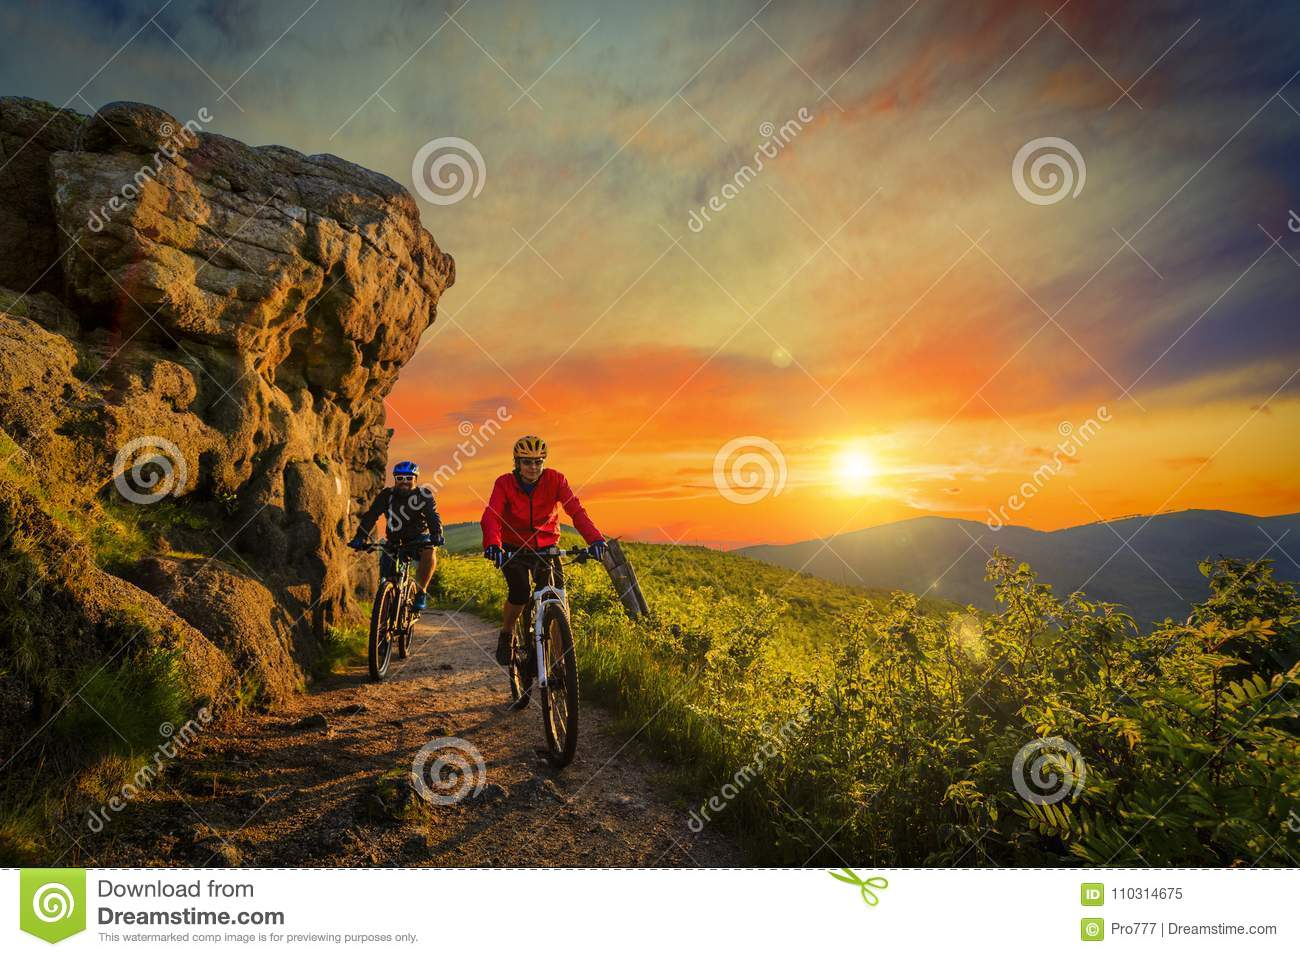 Mountain biking women and man riding on bikes at sunset mountain